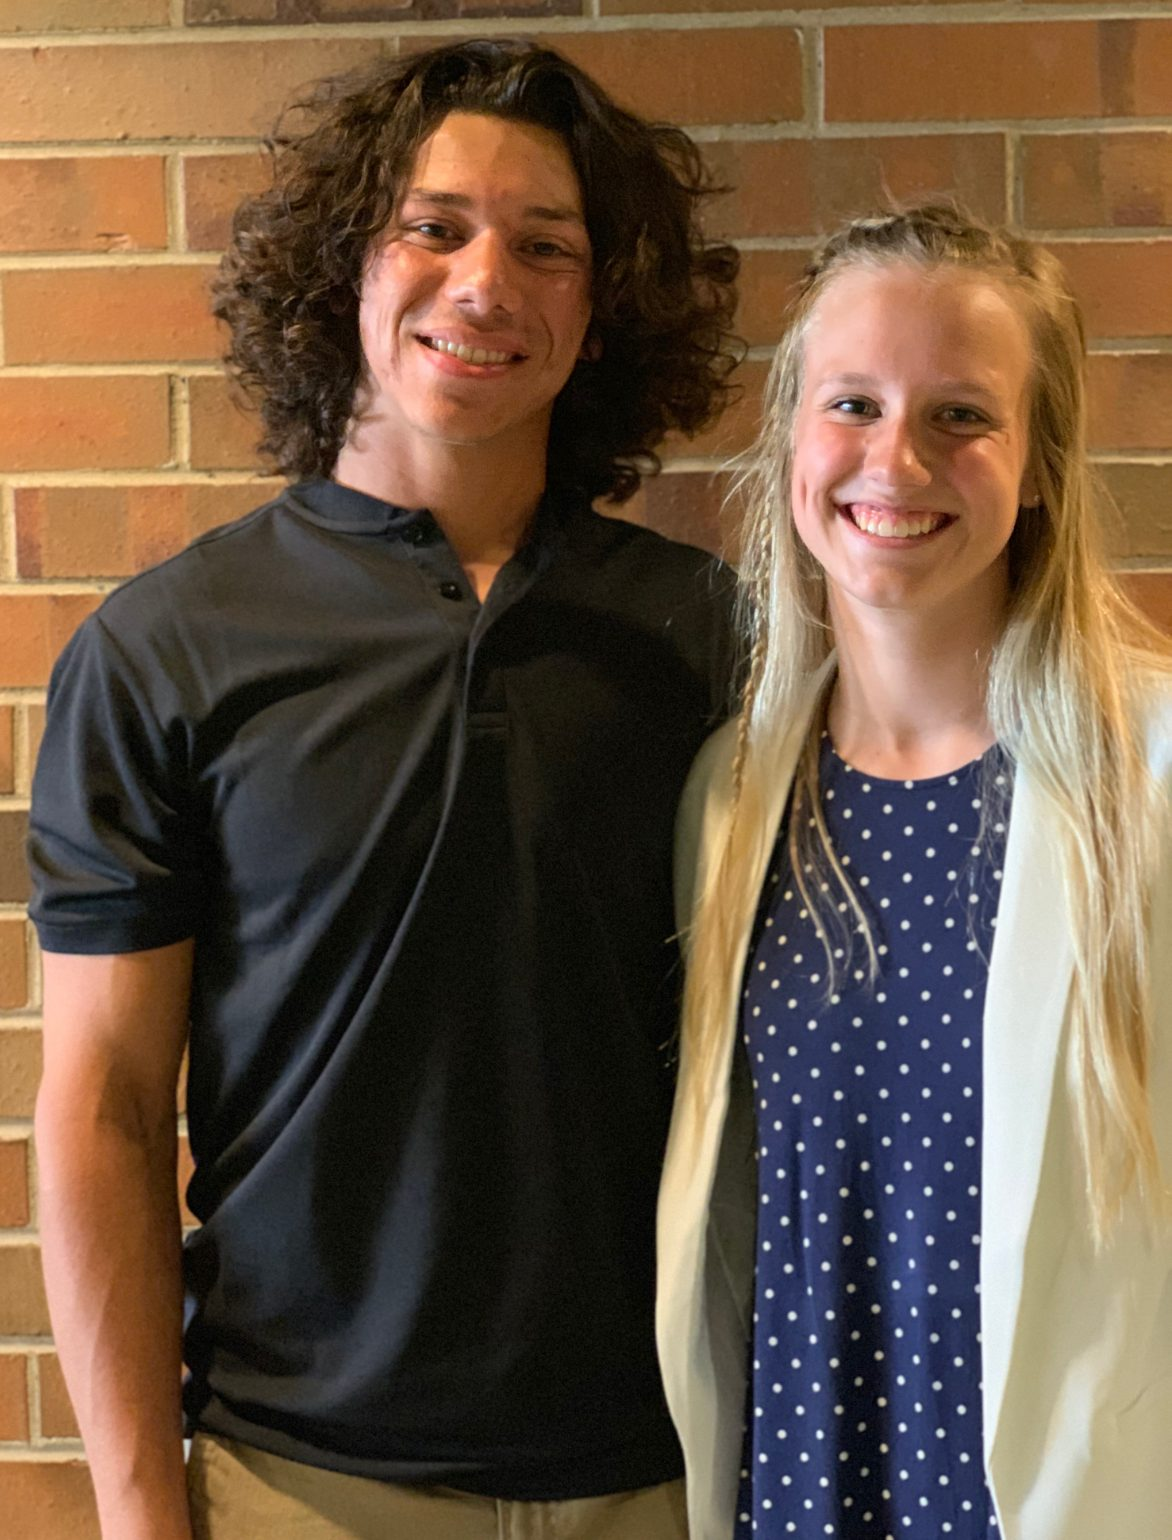 Nicole Oppermann & Nick Hunter win the 2018-2019 Viking Award